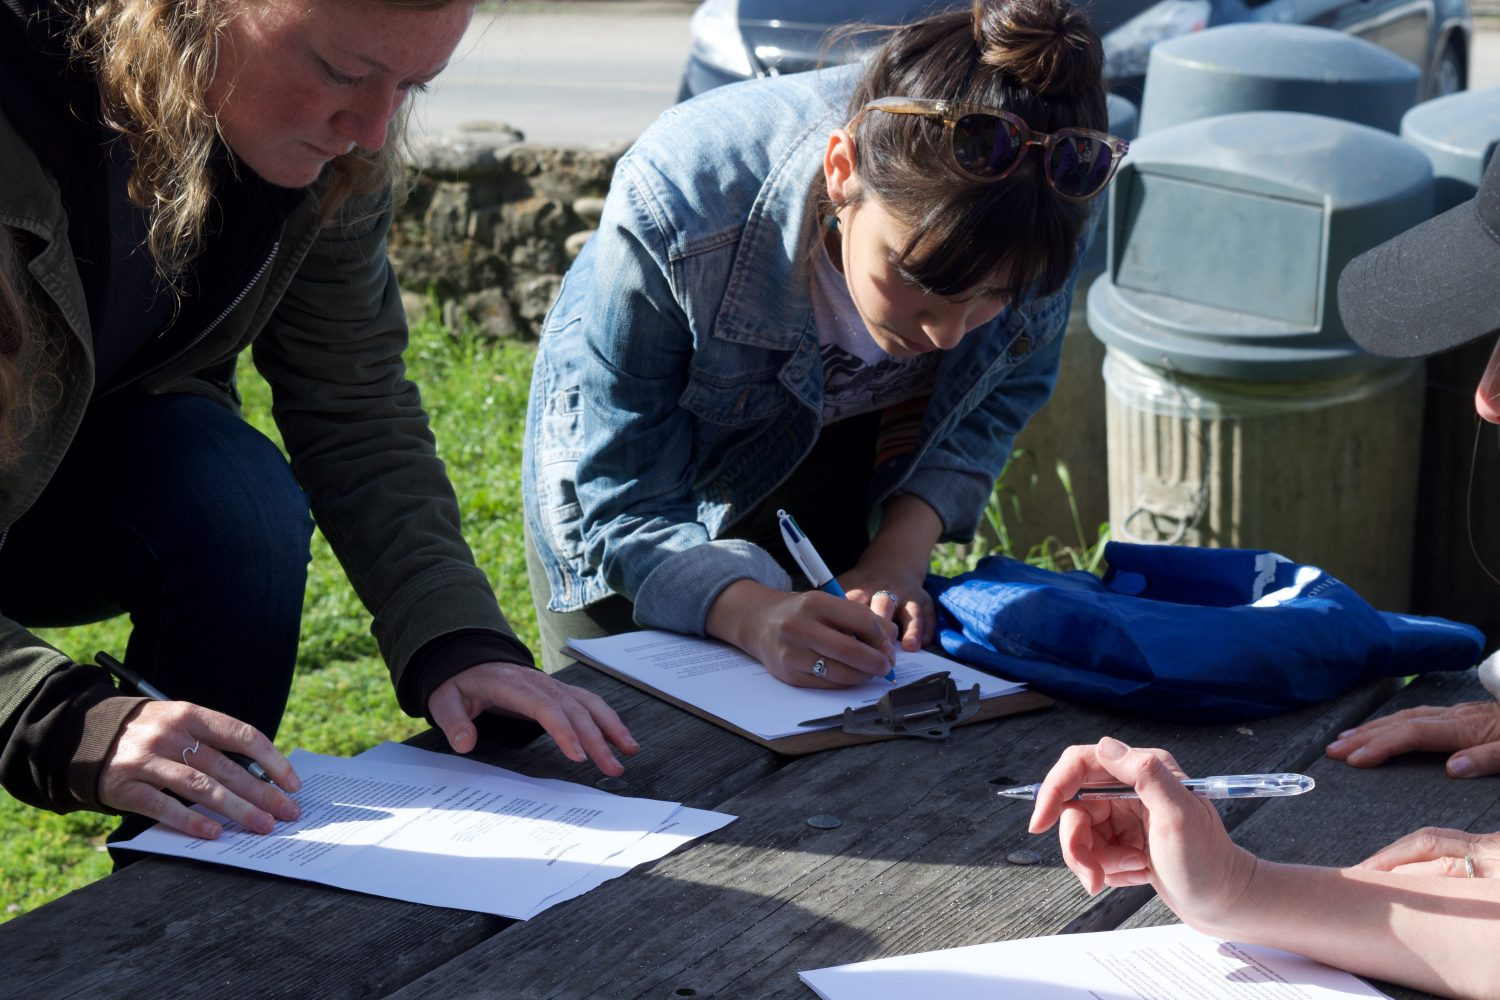 Three women sign waivers on a picnic table near green grass and trash cans.